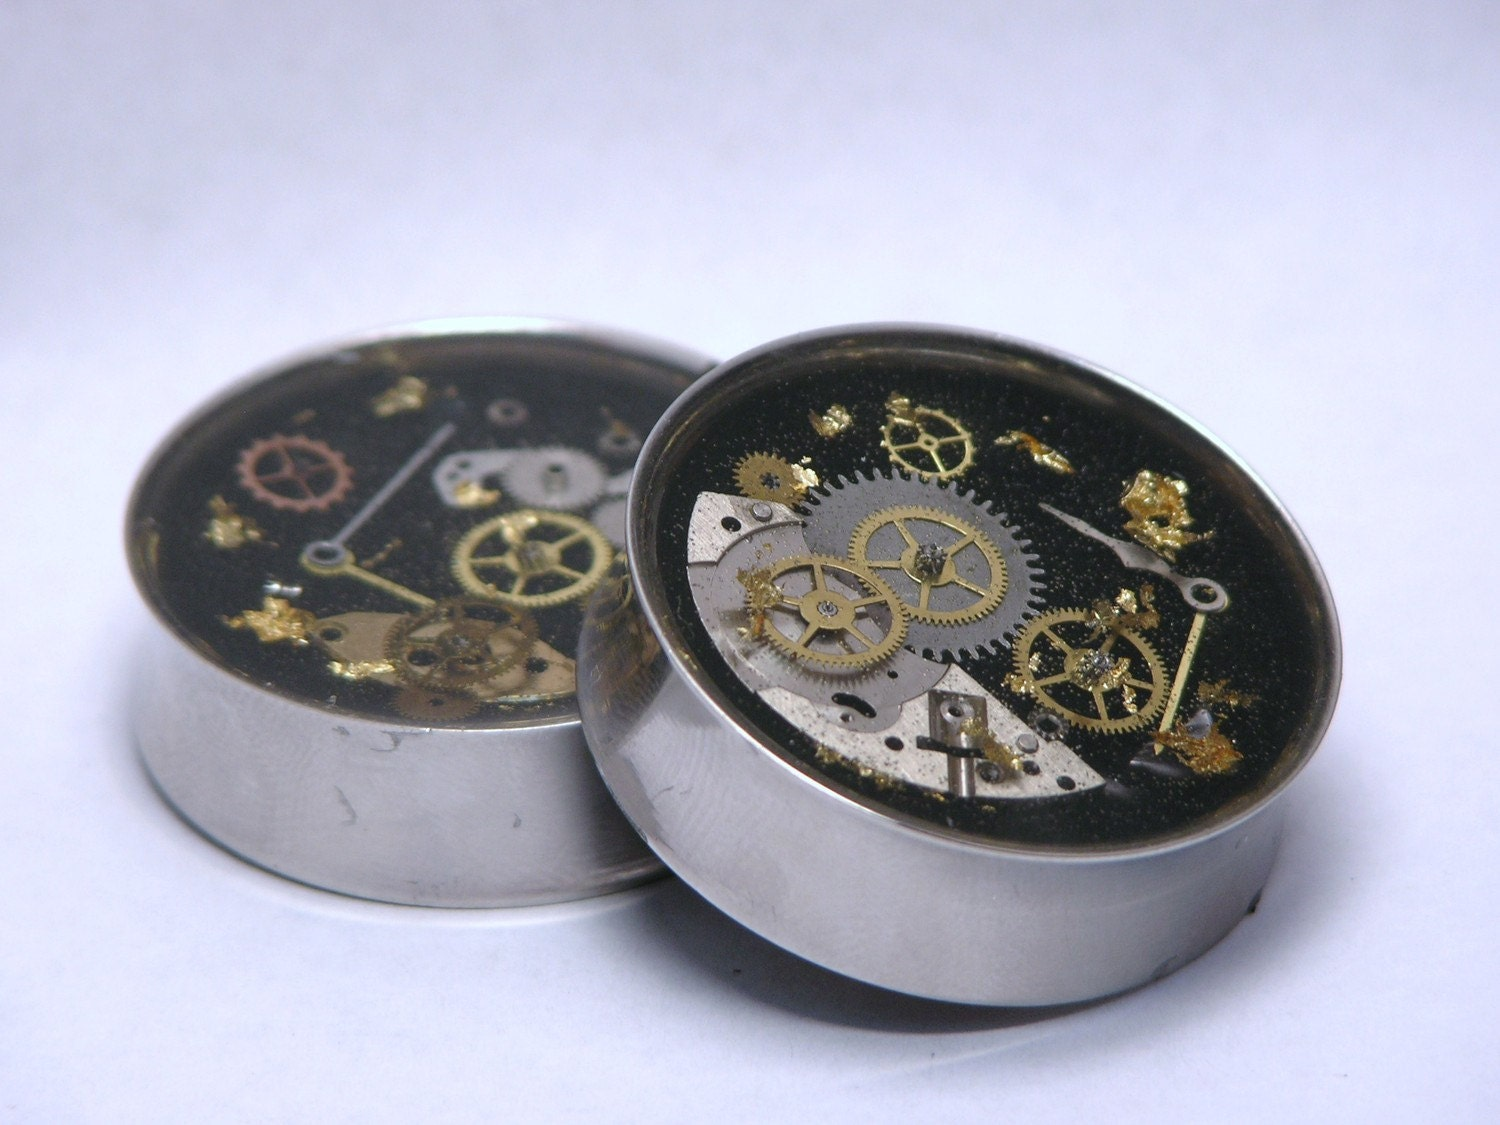 Steampunk Plugs 00 Gauge to 1 Inch 6mm to 25mm